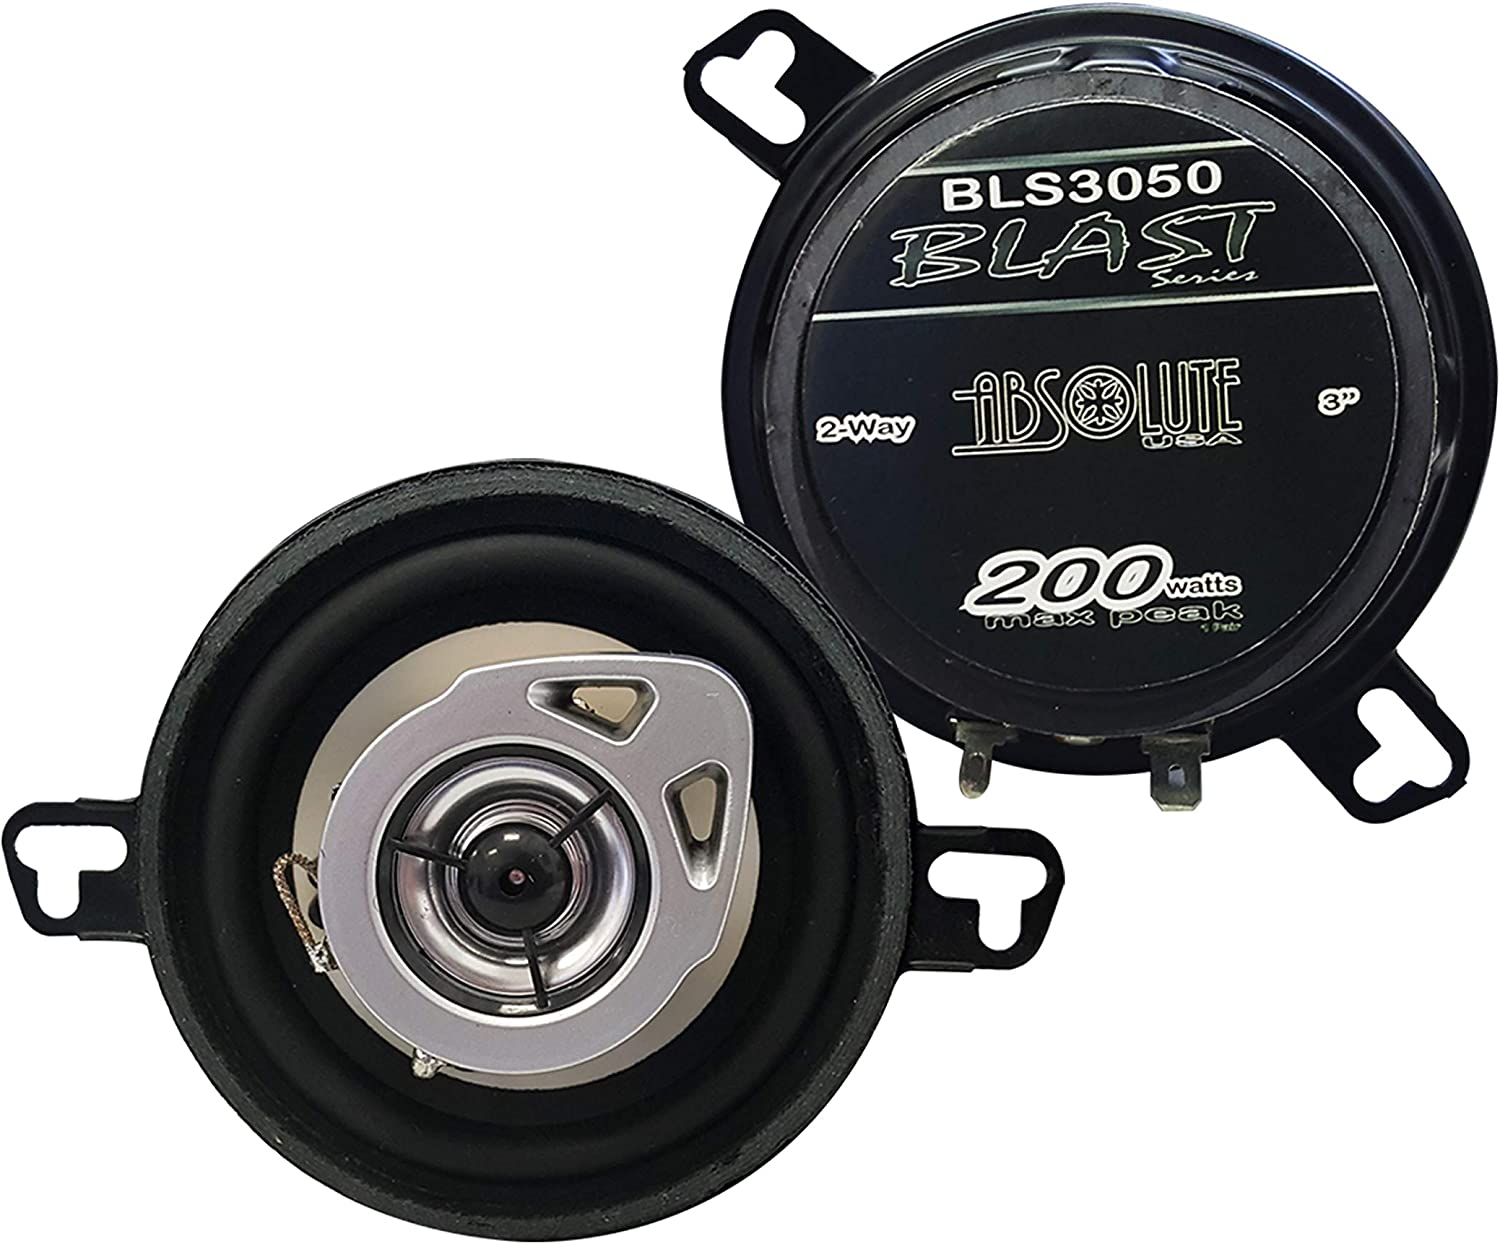 Absolute USA BLS3050 3.5 2-Way Car Speakers with Polypropylene Cones 200 watts per Pair